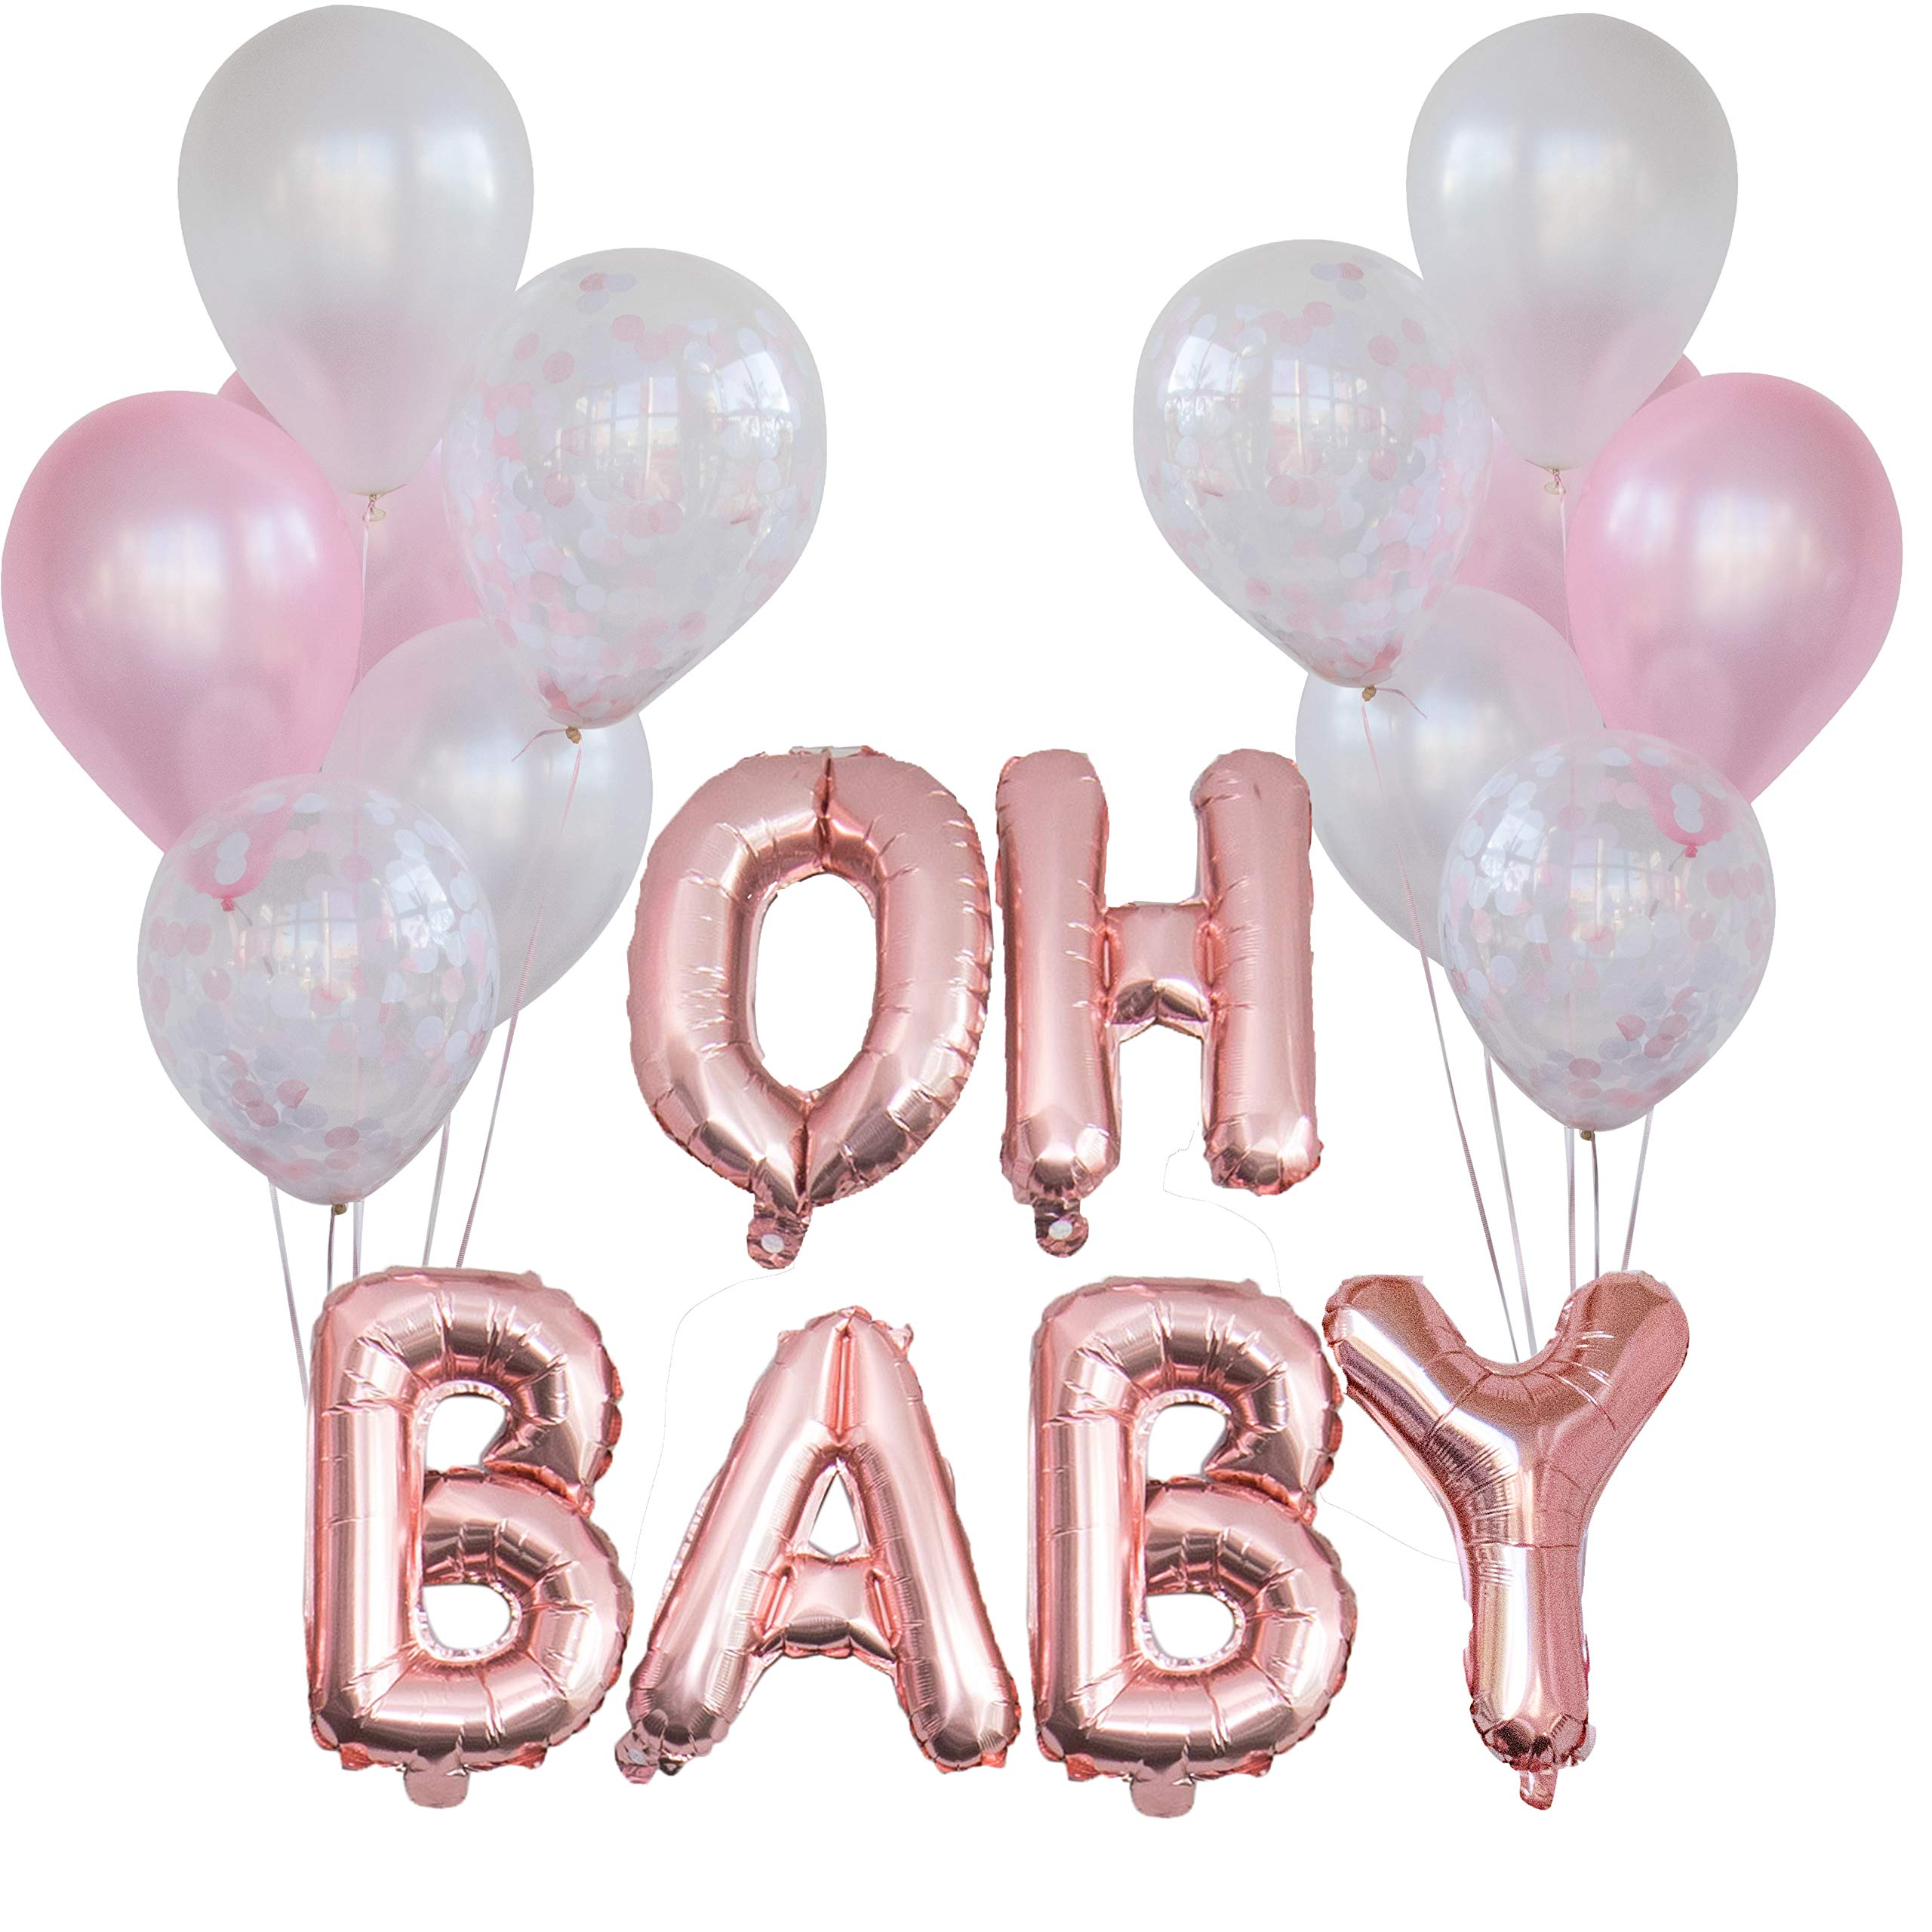 Baby Shower Decorations for Girl | 16'' OH Baby Balloon Letters (Rose Gold) | Girl Baby Shower Balloons. (Pack of 12) (Pink, Confetti, White)